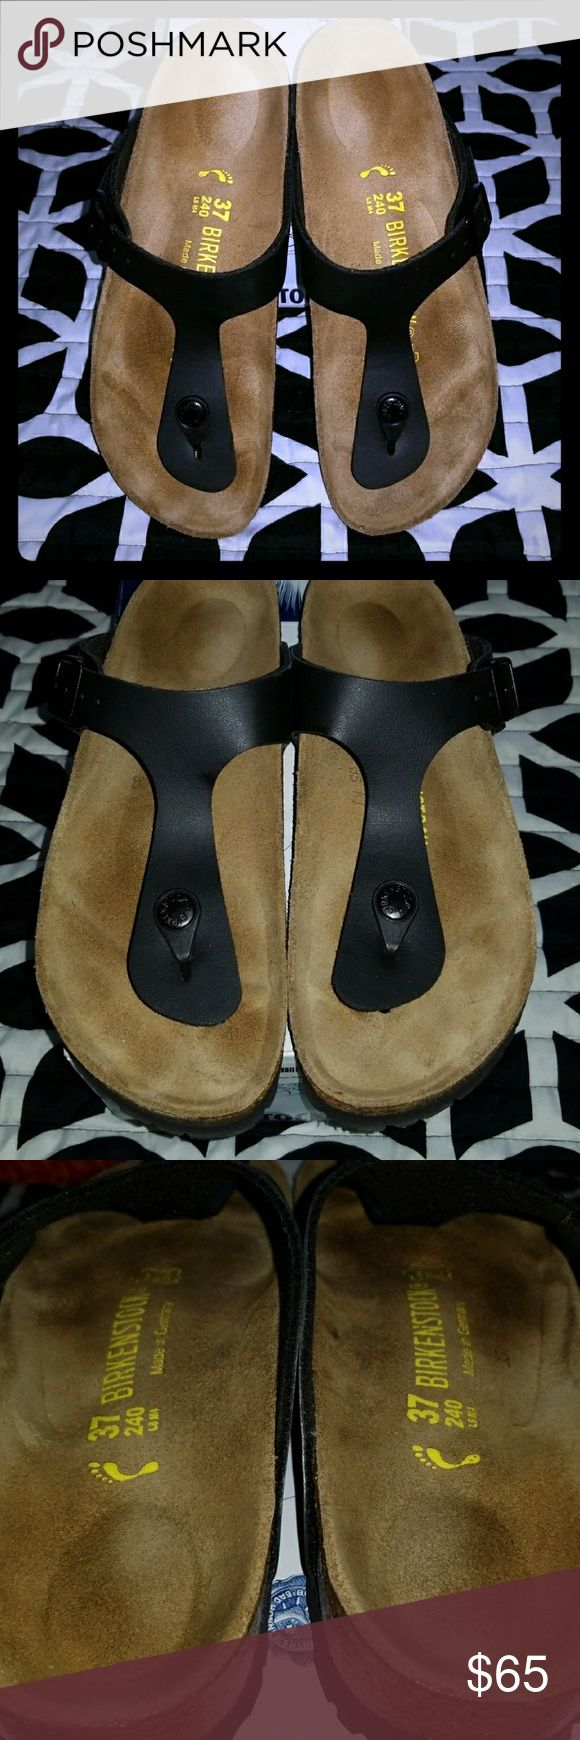 BIRKENSTOCK Gizeh Sandals Practically brand new Gizeh sandals by Birkenstock. These are birko-flor in the color black. Literally worn once, Needs new home! Size 37N-narrow. Birkenstock Shoes Sandals